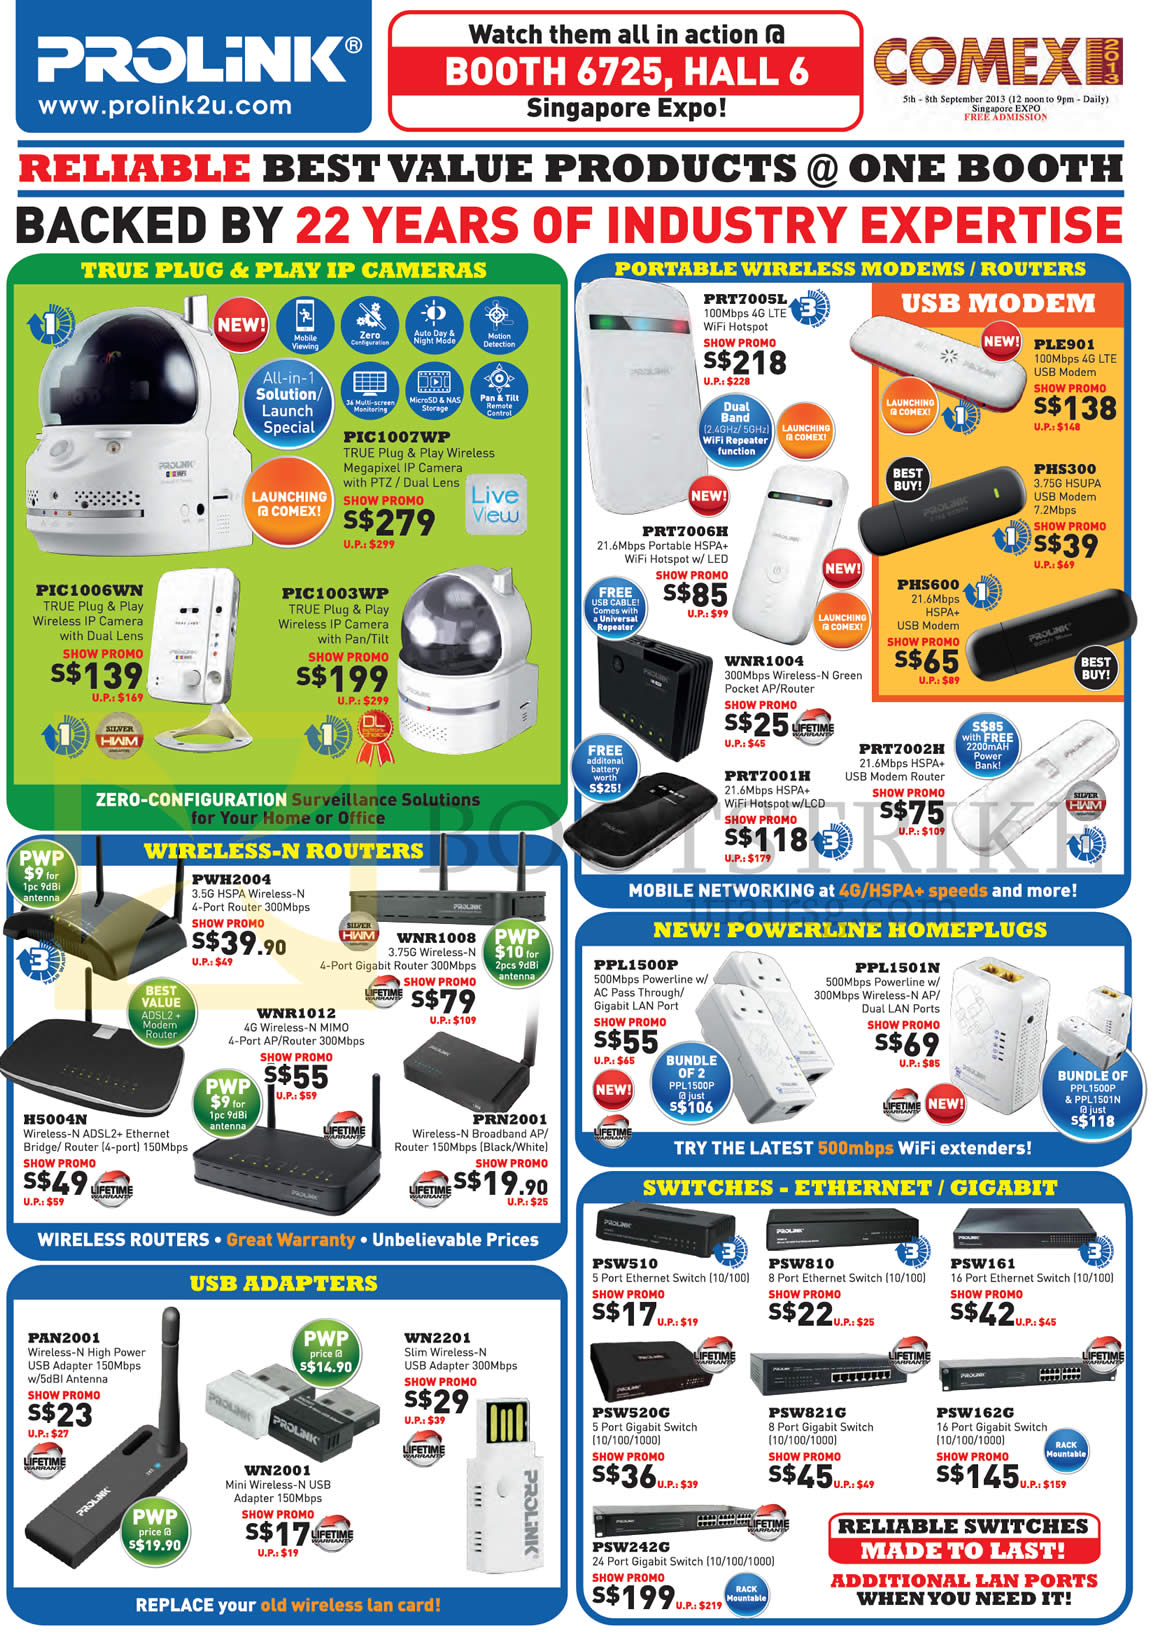 COMEX 2013 price list image brochure of Cybermind Prolink IPCam, Wireless Modem Router, USB Modem Router, Powerline Homeplug, Wireless Adapters, Switch